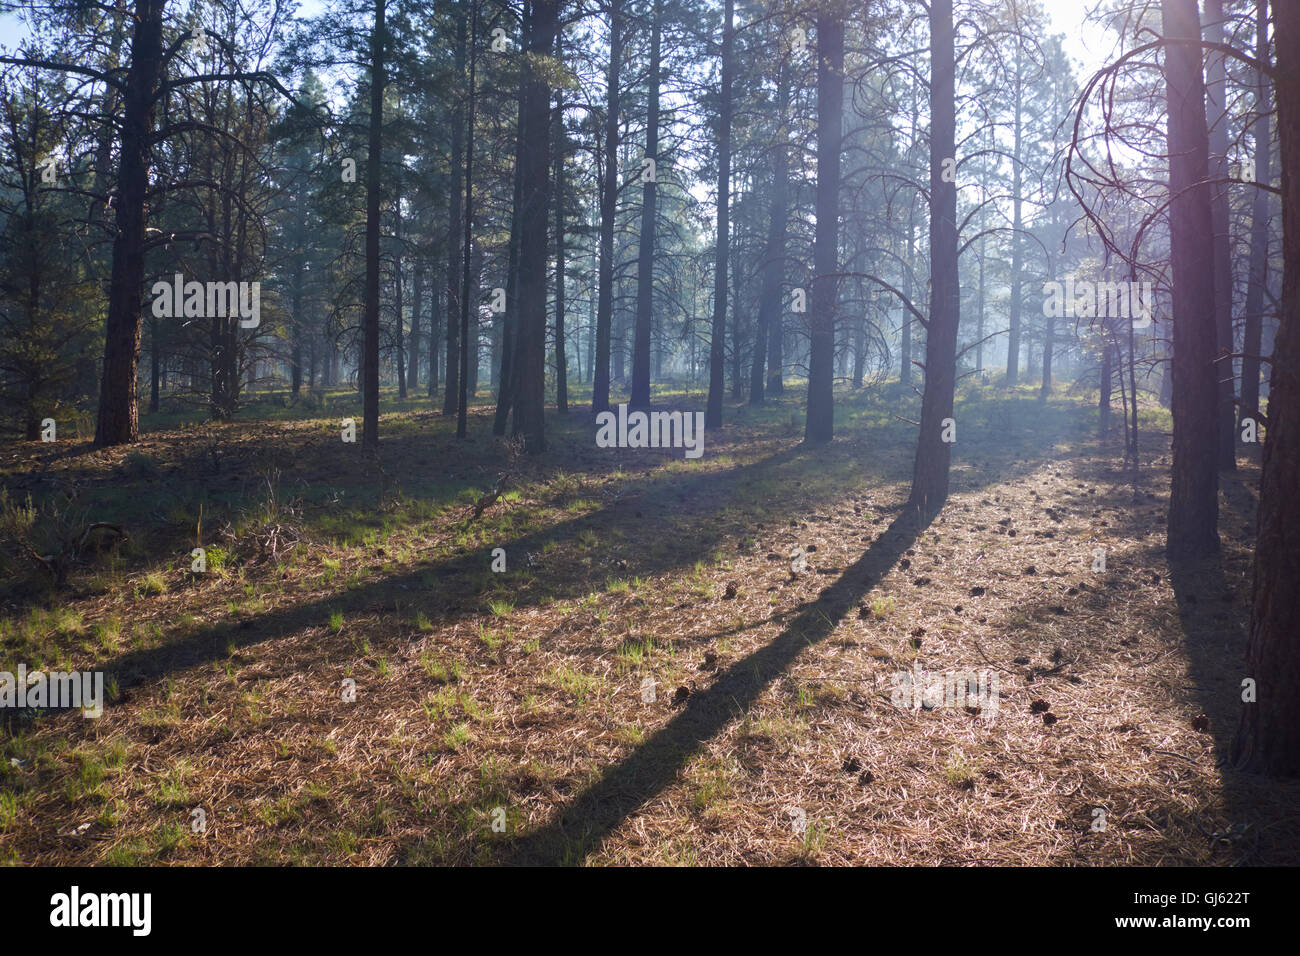 Trees with bark burnt by forest fire. Arizona. USA - Stock Image